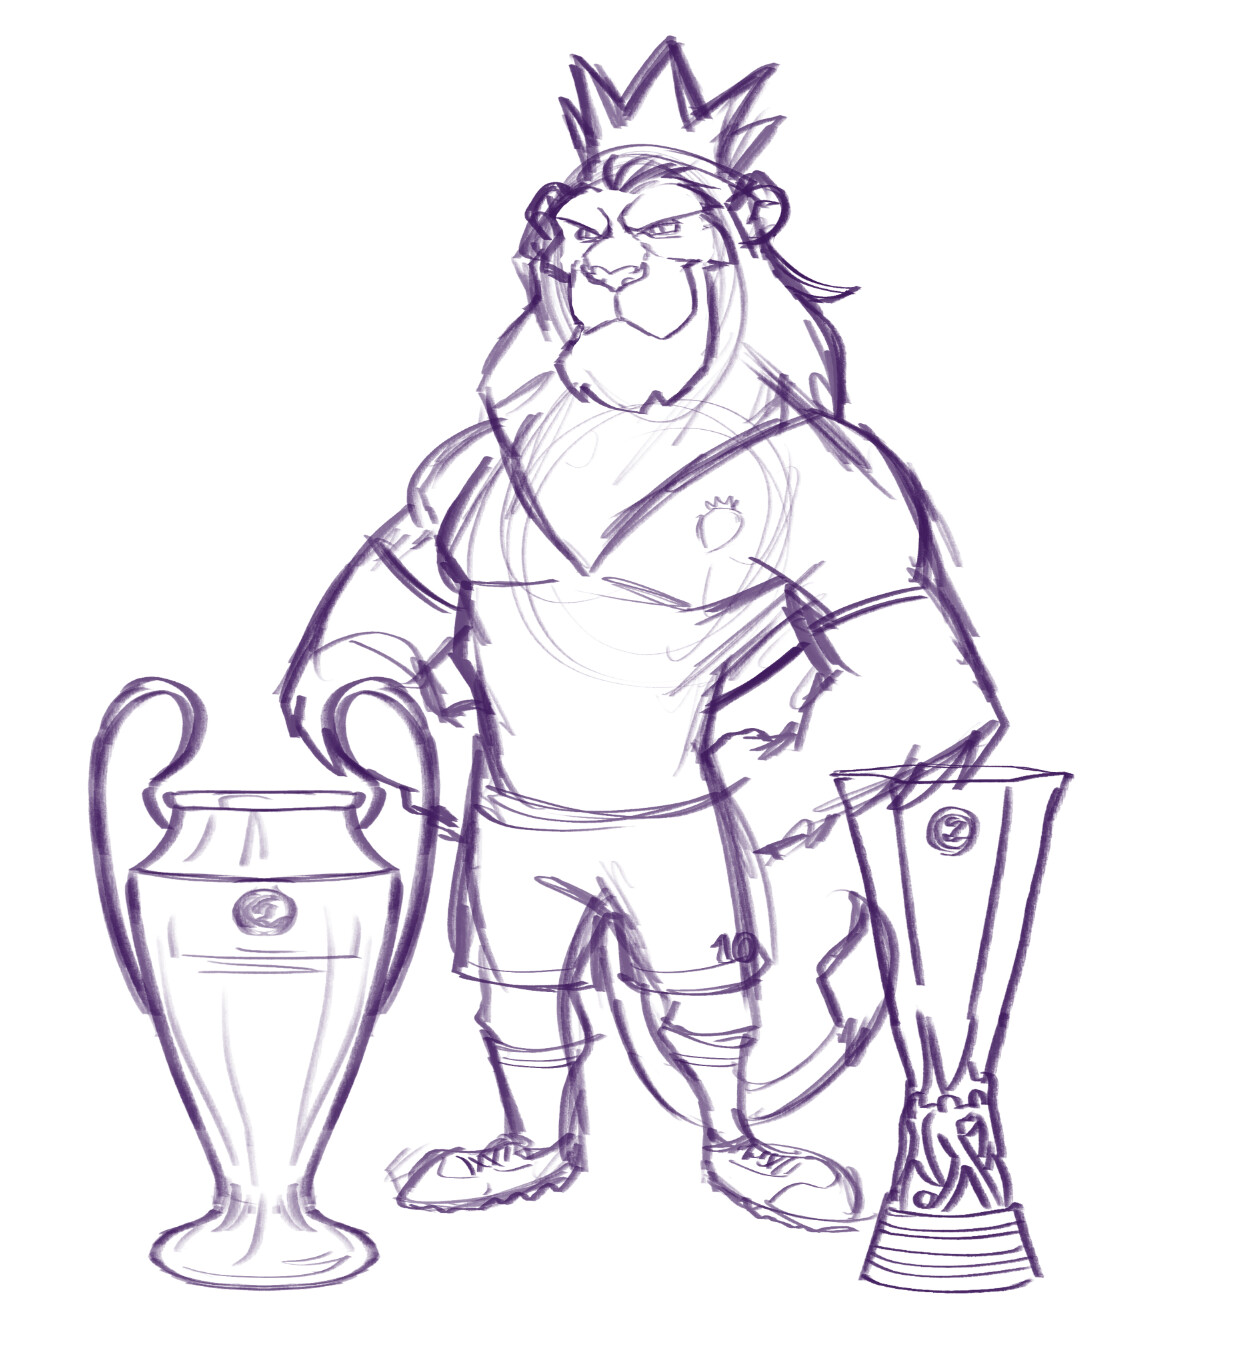 Arturo Aguirre Art Premier League Lion Mascot They Re Coming Home Latest premier league statistics, standings, fixtures, results and other statistical analysis. premier league lion mascot they